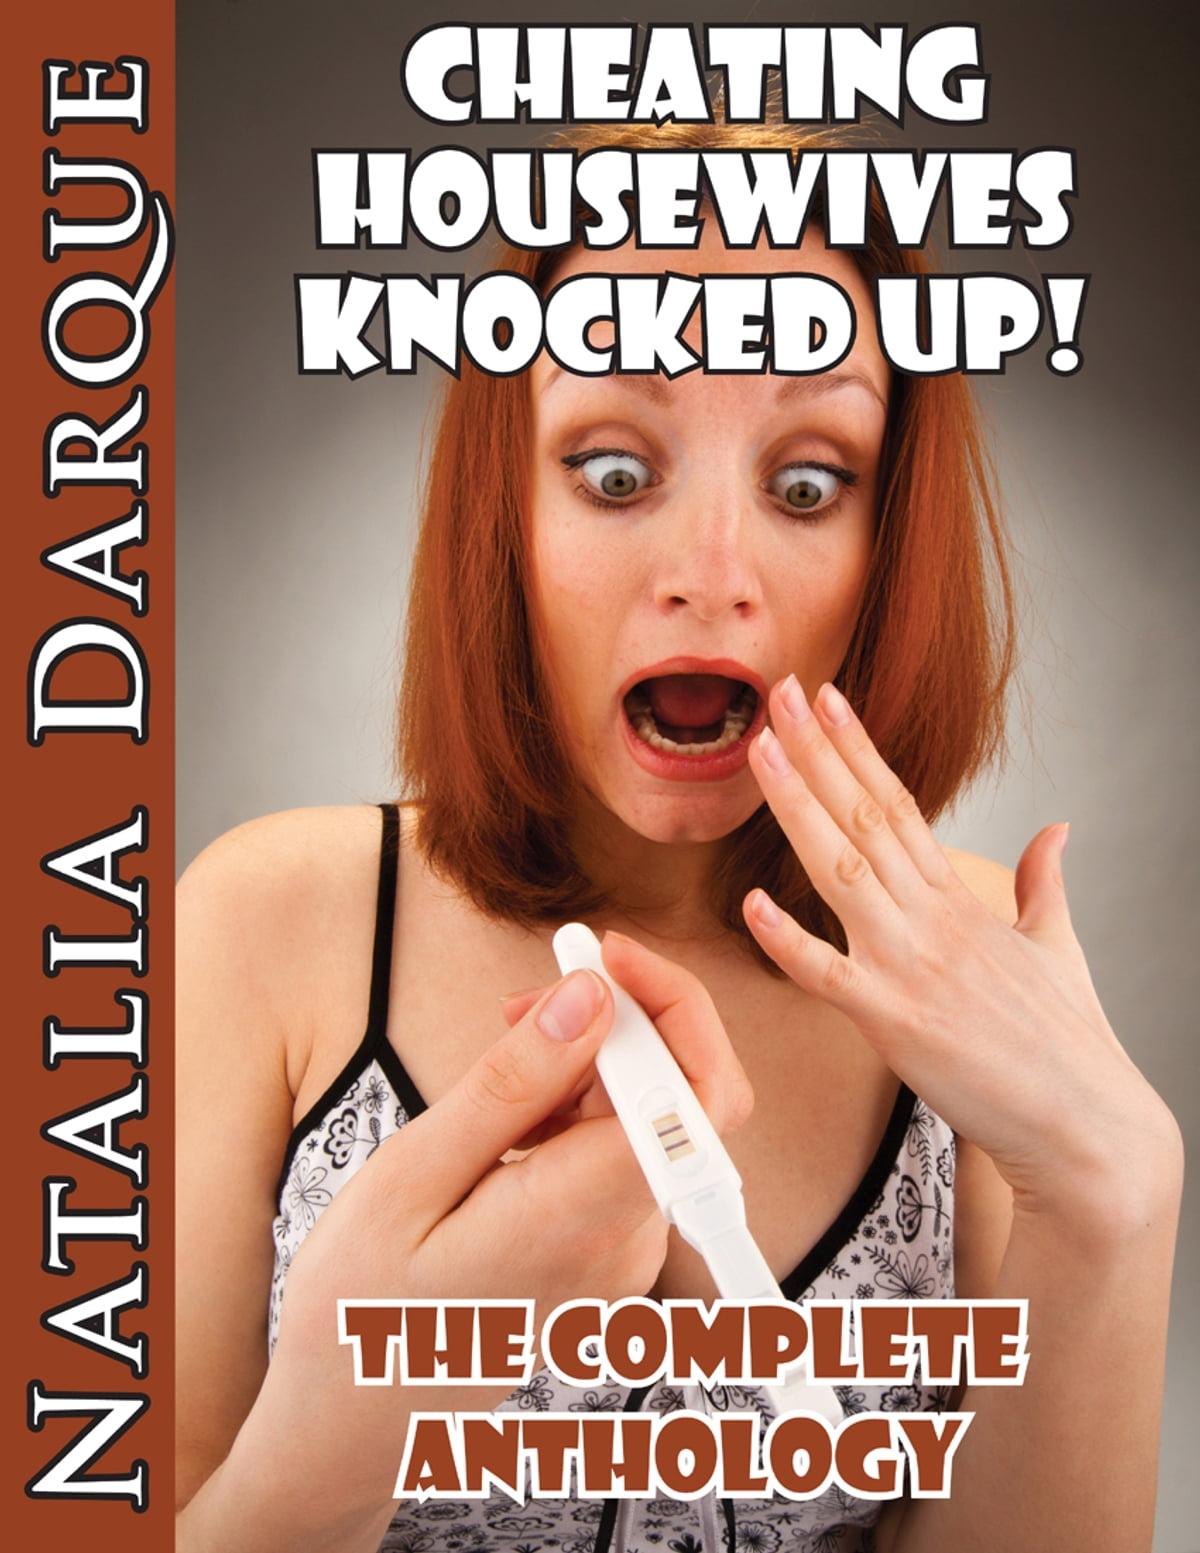 Cheating Housewives Knocked Up Ebook By Natalia Darque 1230000007857 Rakuten Kobo